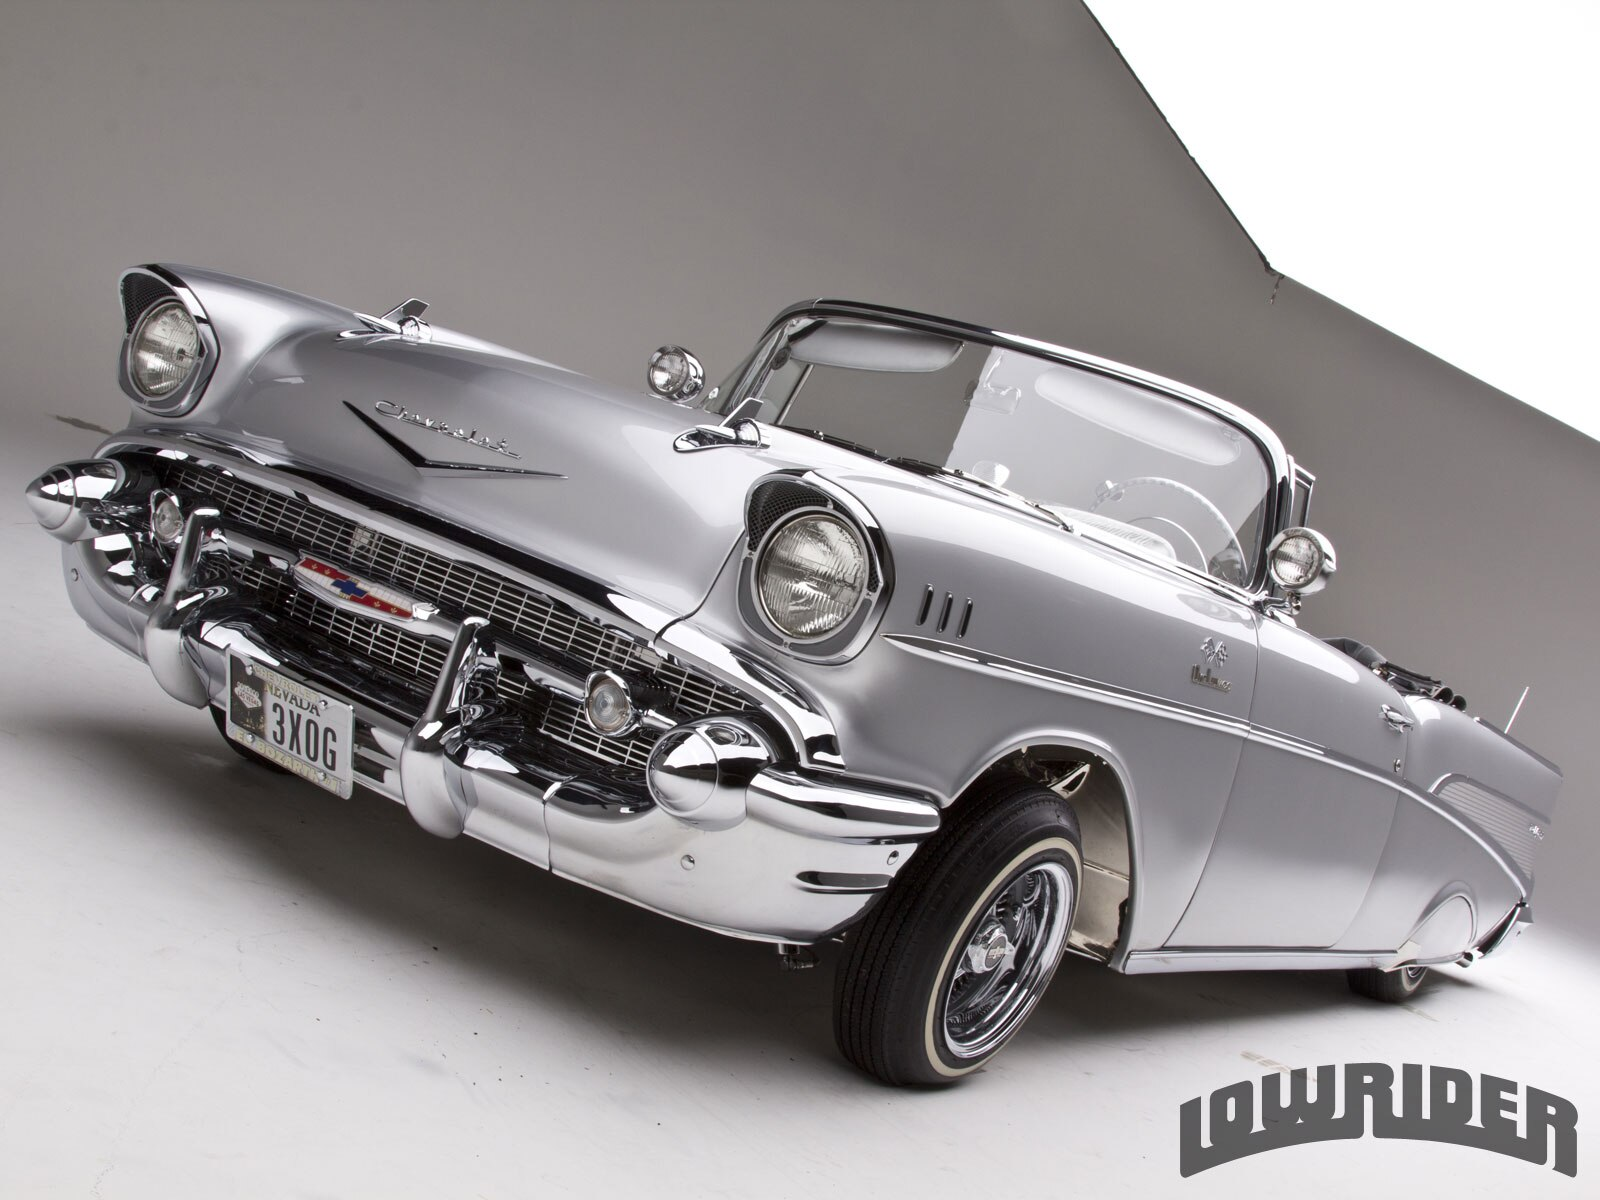 1202-lrmp-13-o-1957-chevrolet-bel-air-driver-side-front-view